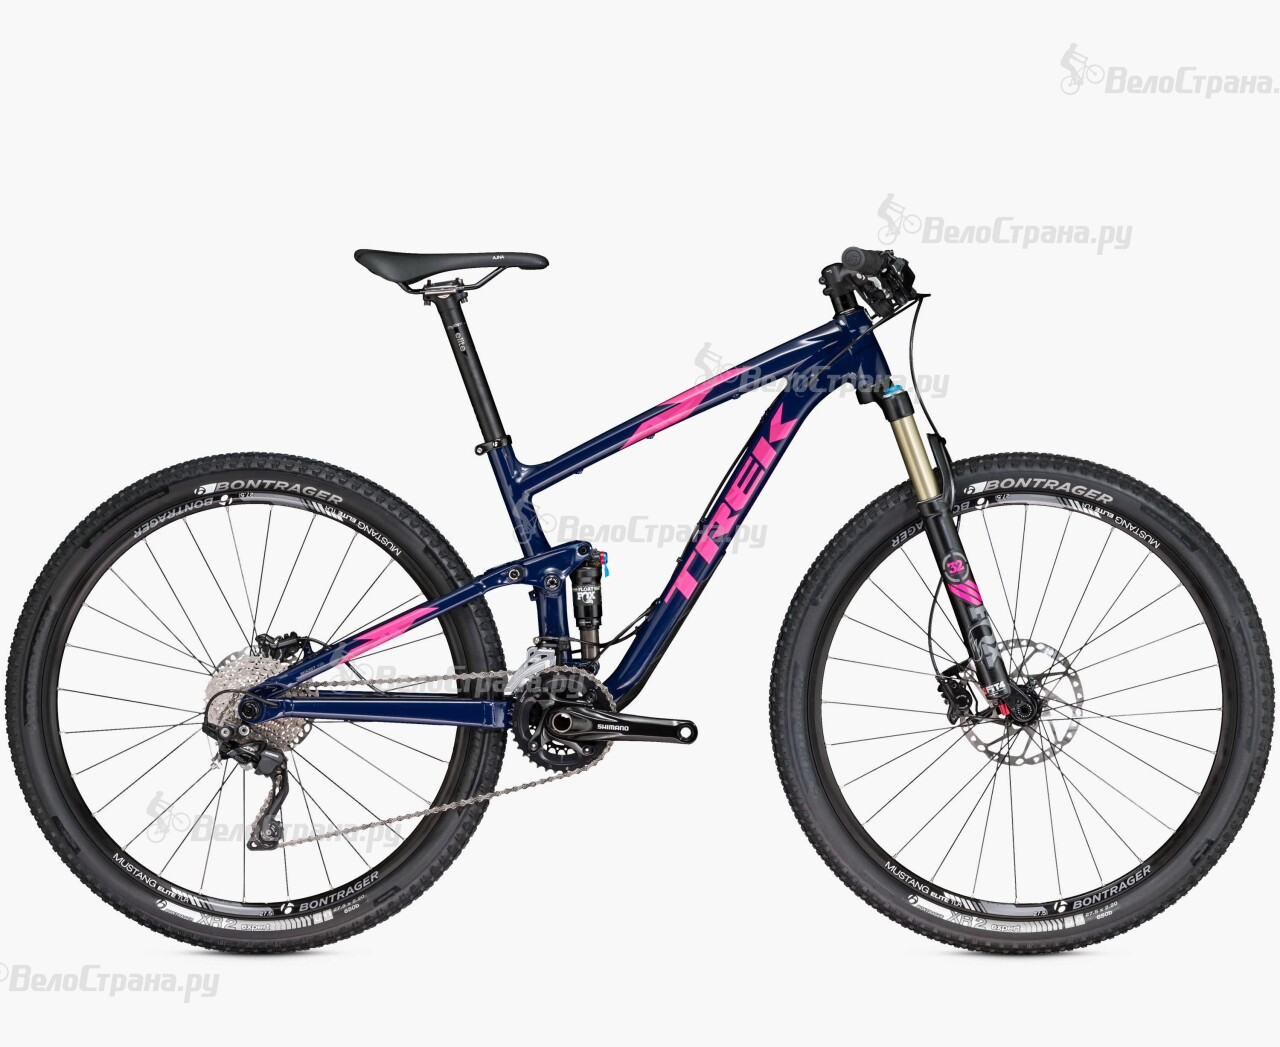 Велосипед Trek Top Fuel 8 Women's 29 (2016) велосипед trek fuel ex 9 29 2017